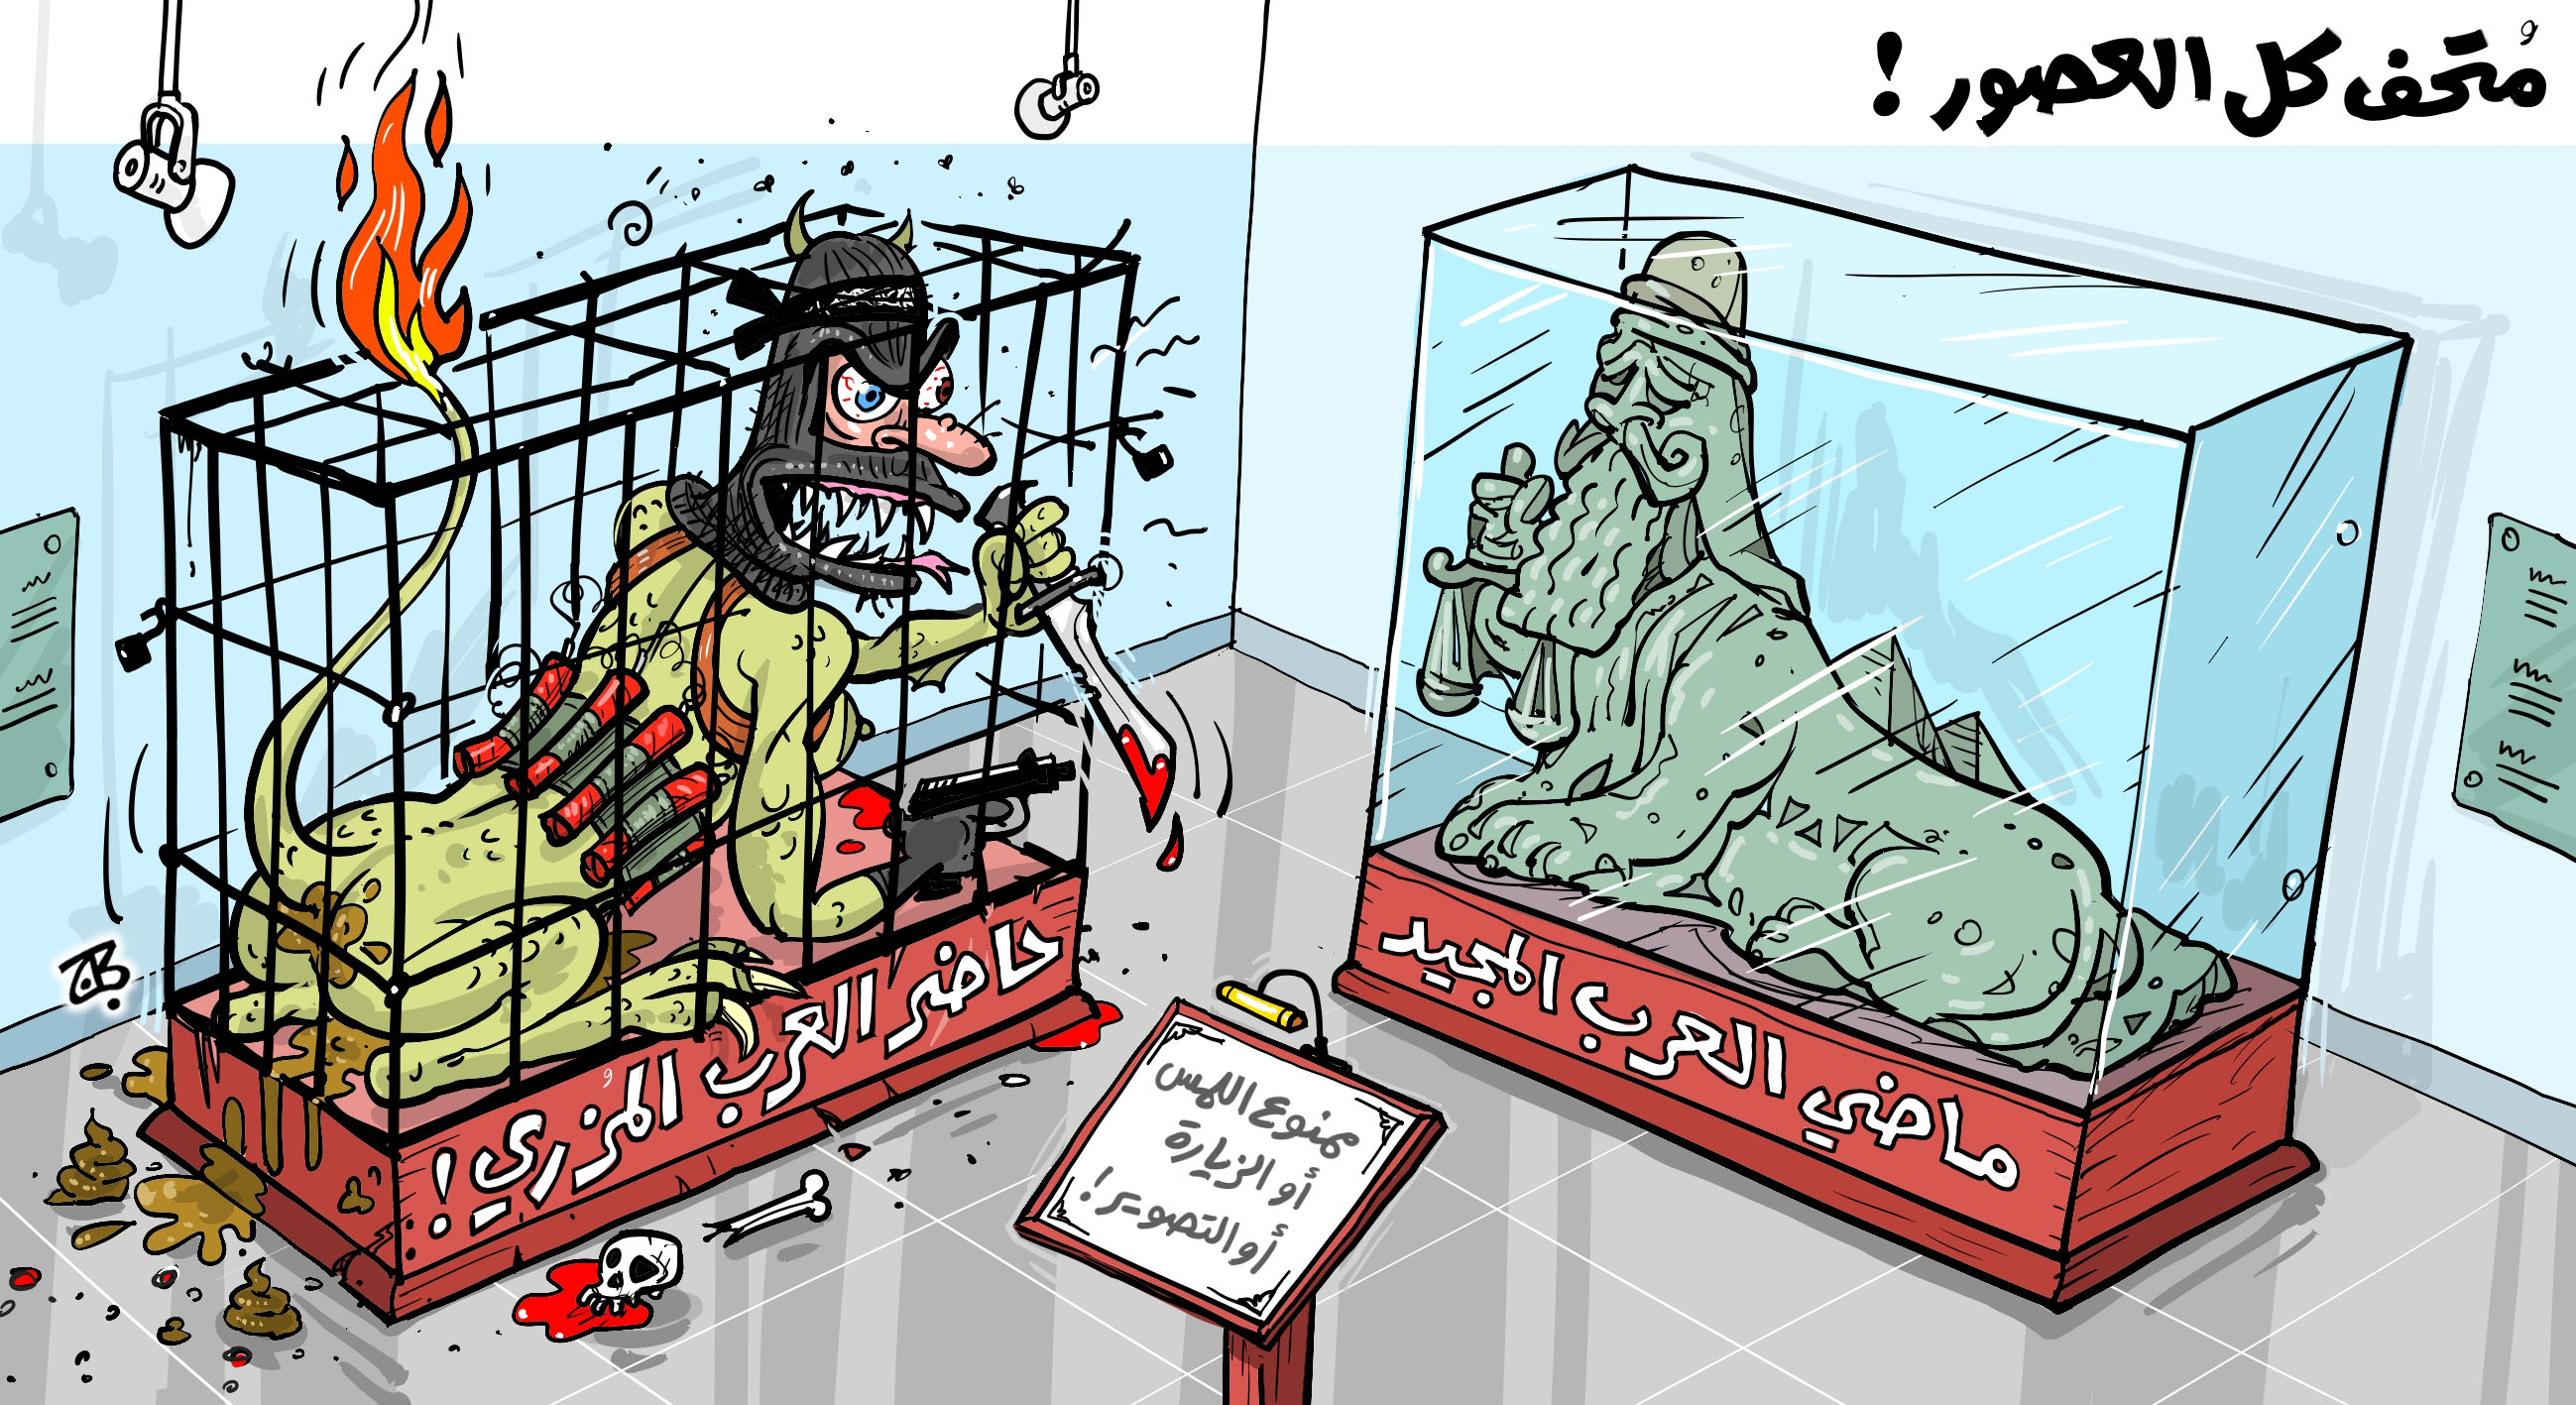 all ages museum past arabs present statue tunis bardo mosil isis terror islam cage 15-03-23